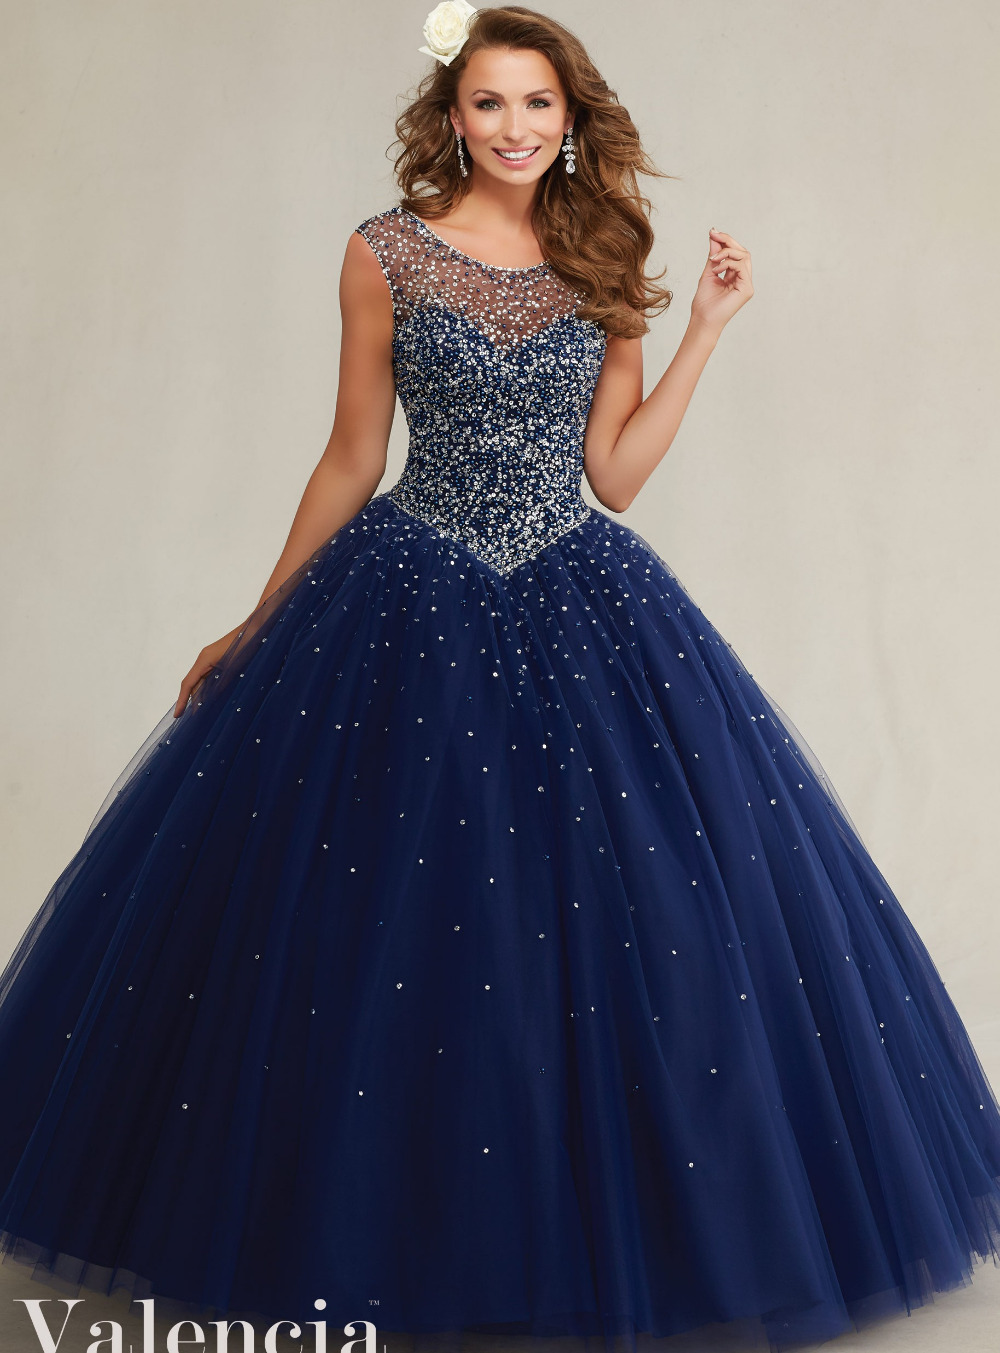 And quinceanera silver dresses recommendations to wear in summer in 2019